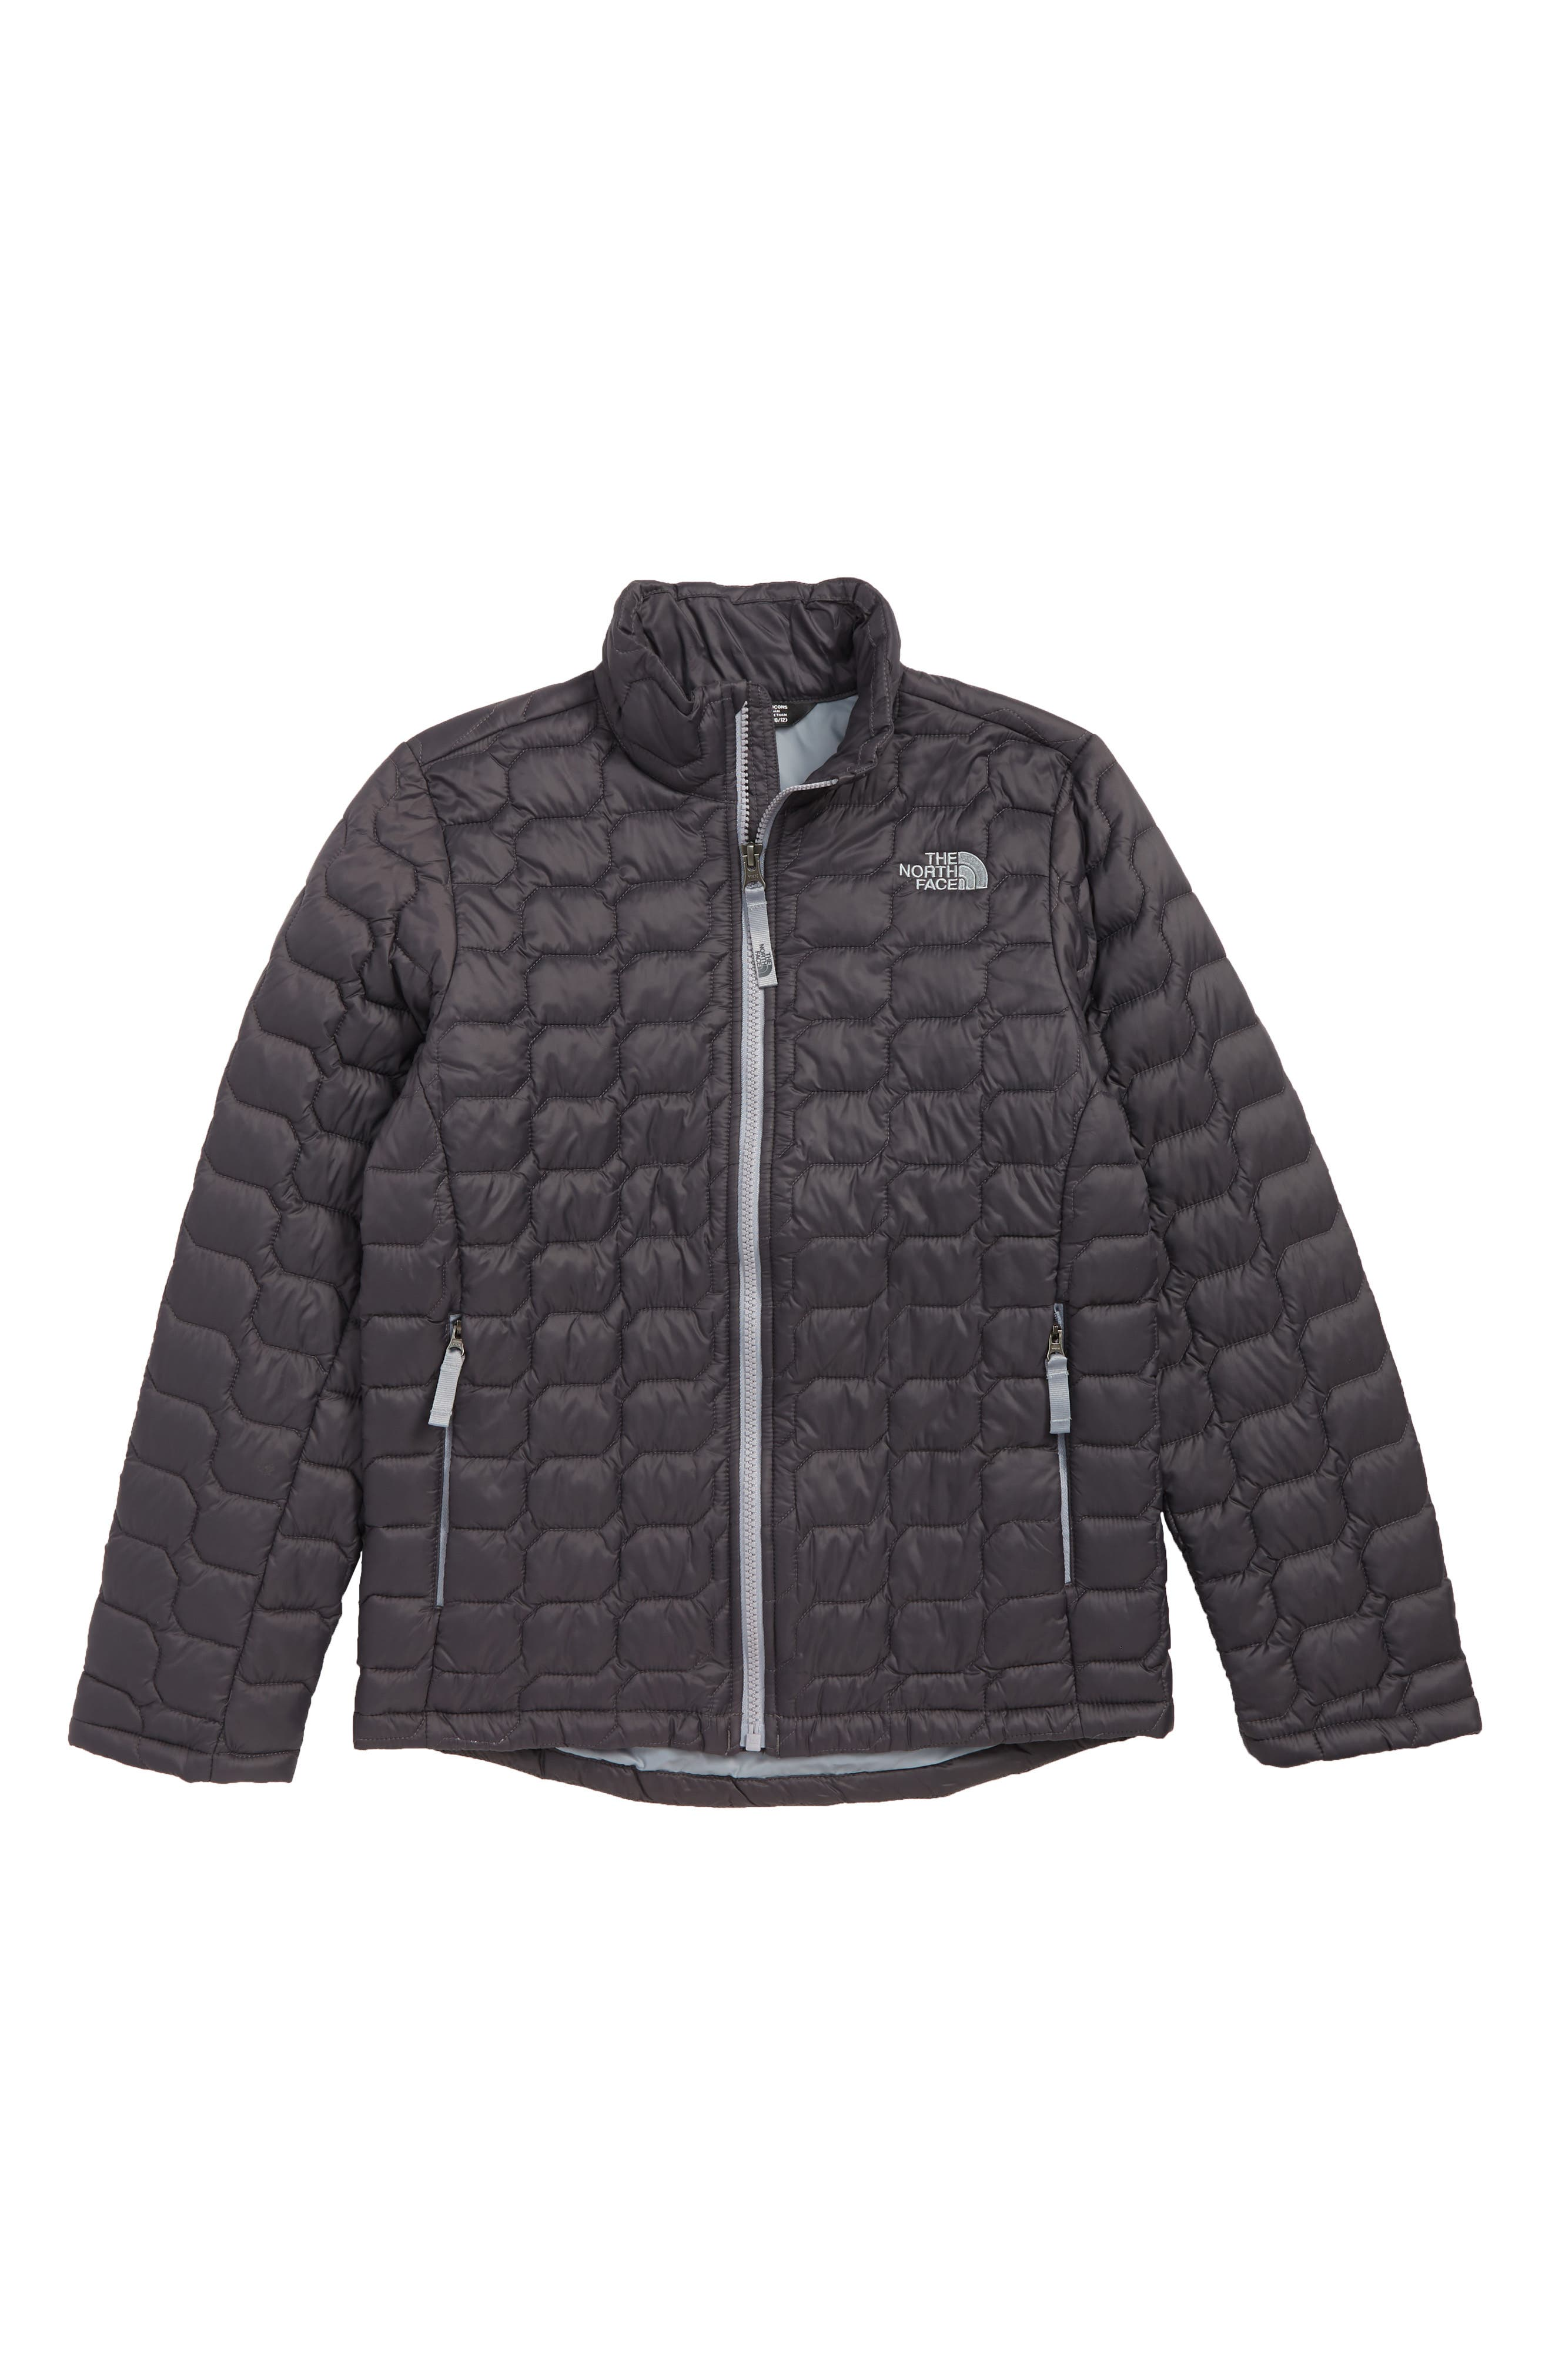 THE NORTH FACE, ThermoBall<sup>™</sup> PrimaLoft<sup>®</sup> Packable Jacket, Main thumbnail 1, color, GRAPHITE GREY